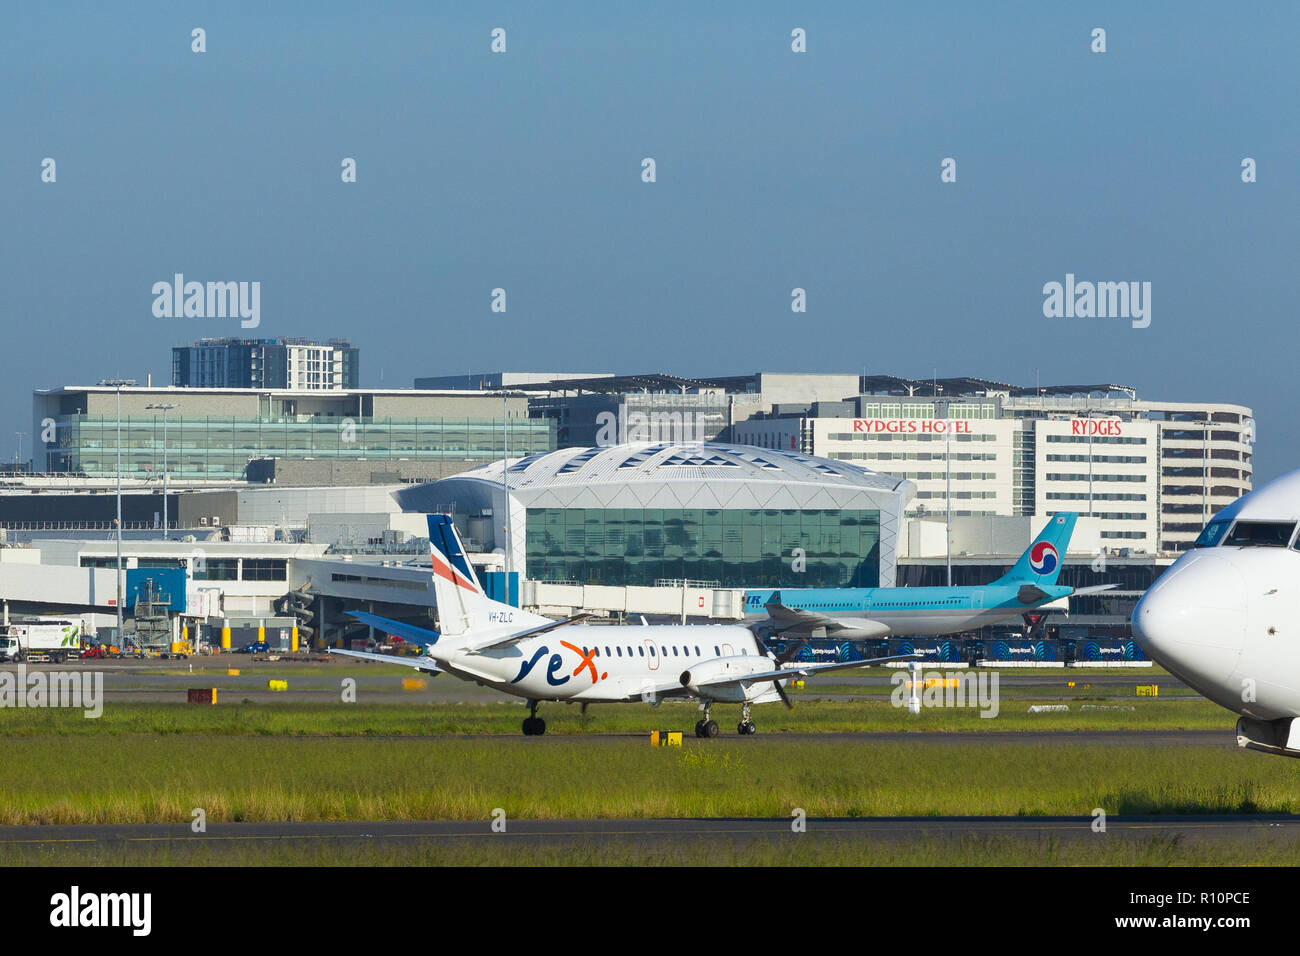 Detail from Sydney (Kingsford Smith) Airport in Sydney, Australia, looking towards the International Terminal on the western side of the airport. Pictured: VH-ZLC REX (Regional Express) Saab 340B. - Stock Image